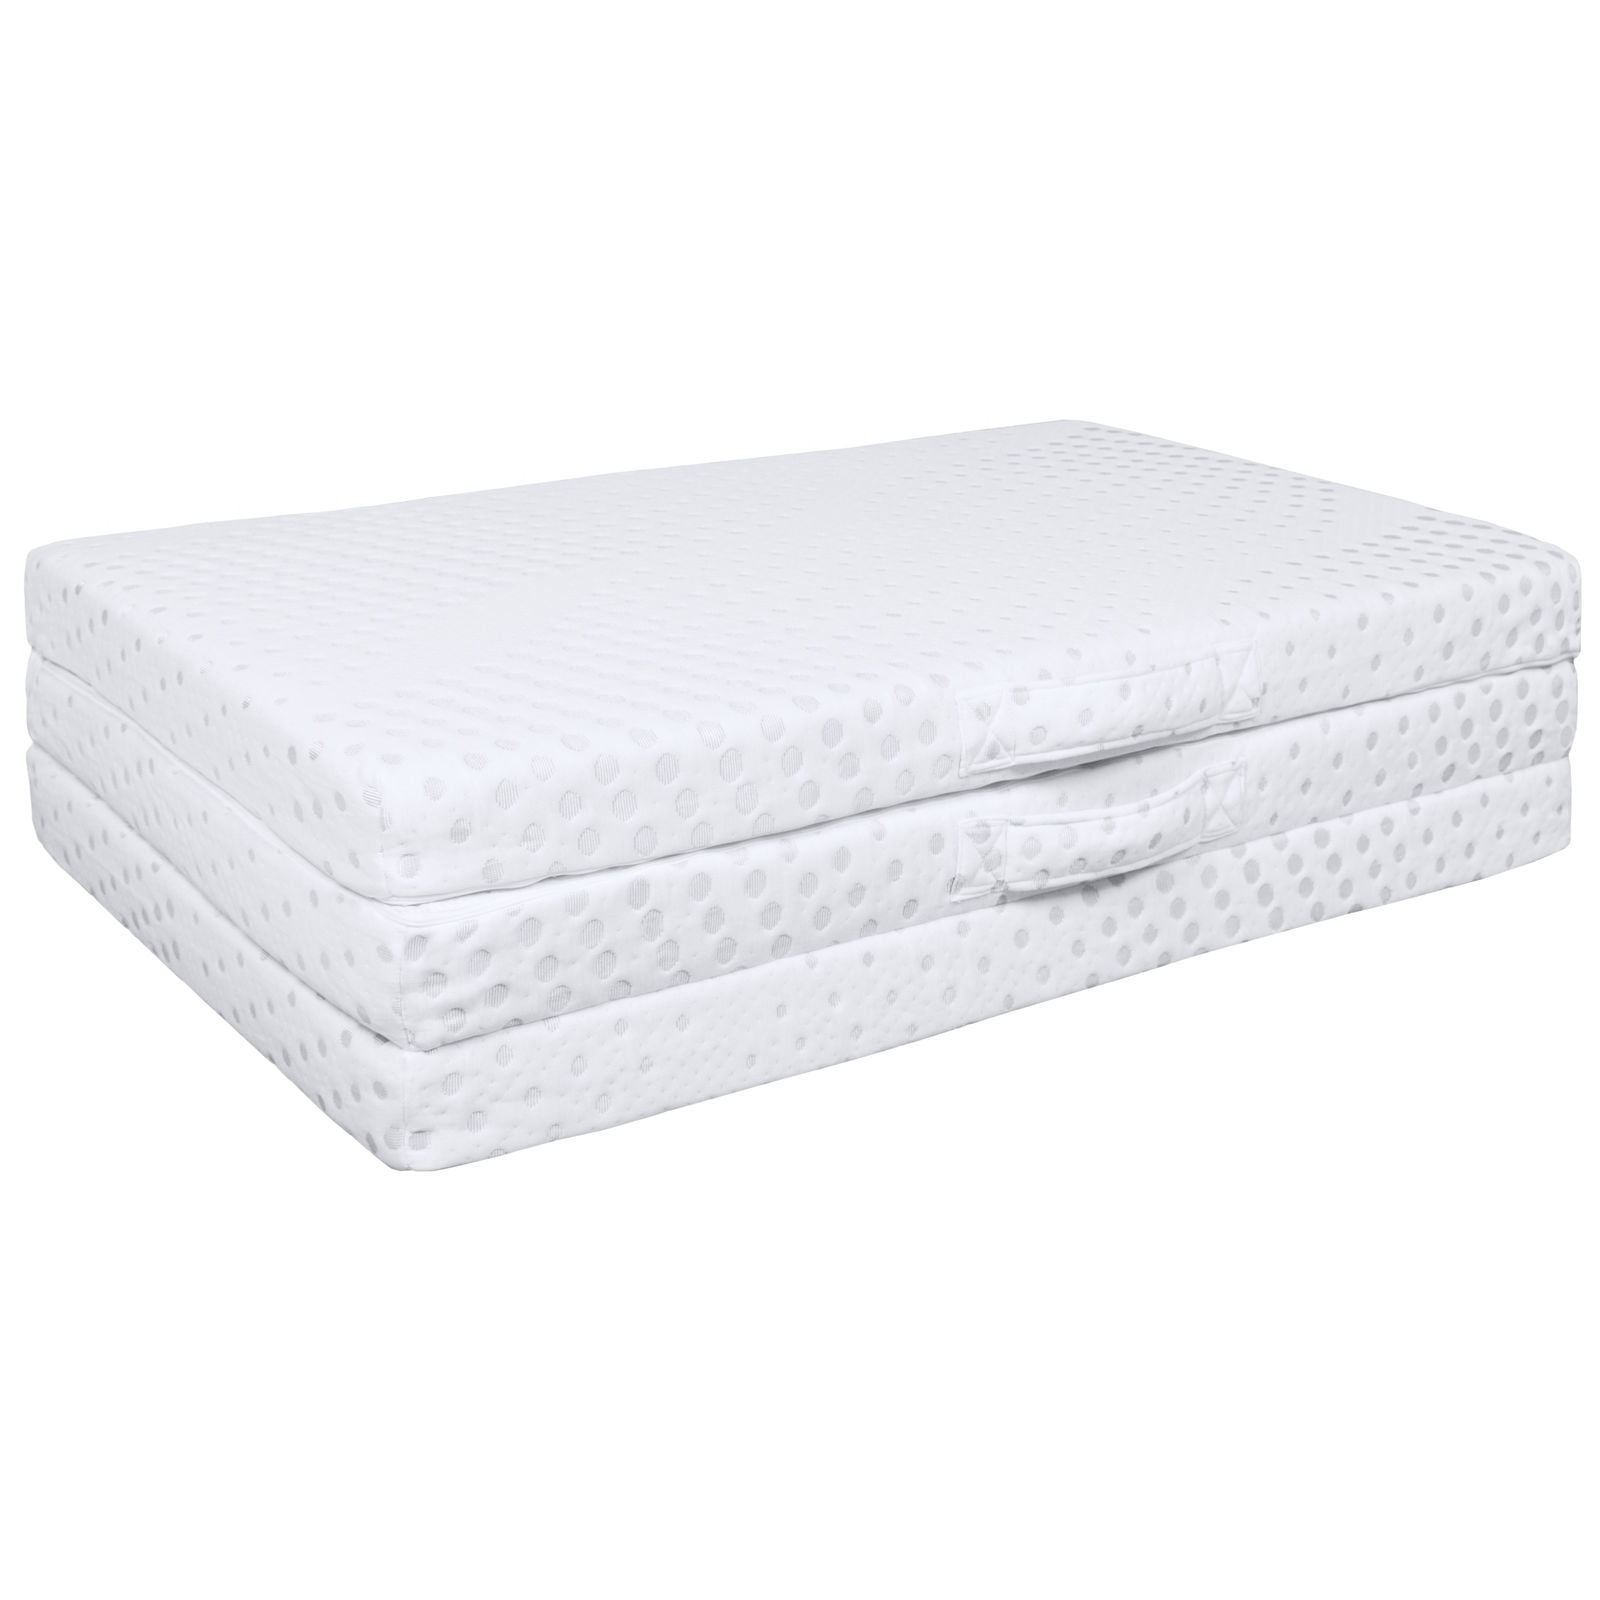 Ghp 3 Quot Portable Tri Fold Twin Size Memory Foam Mattress Topper With Removable Cover Walmart